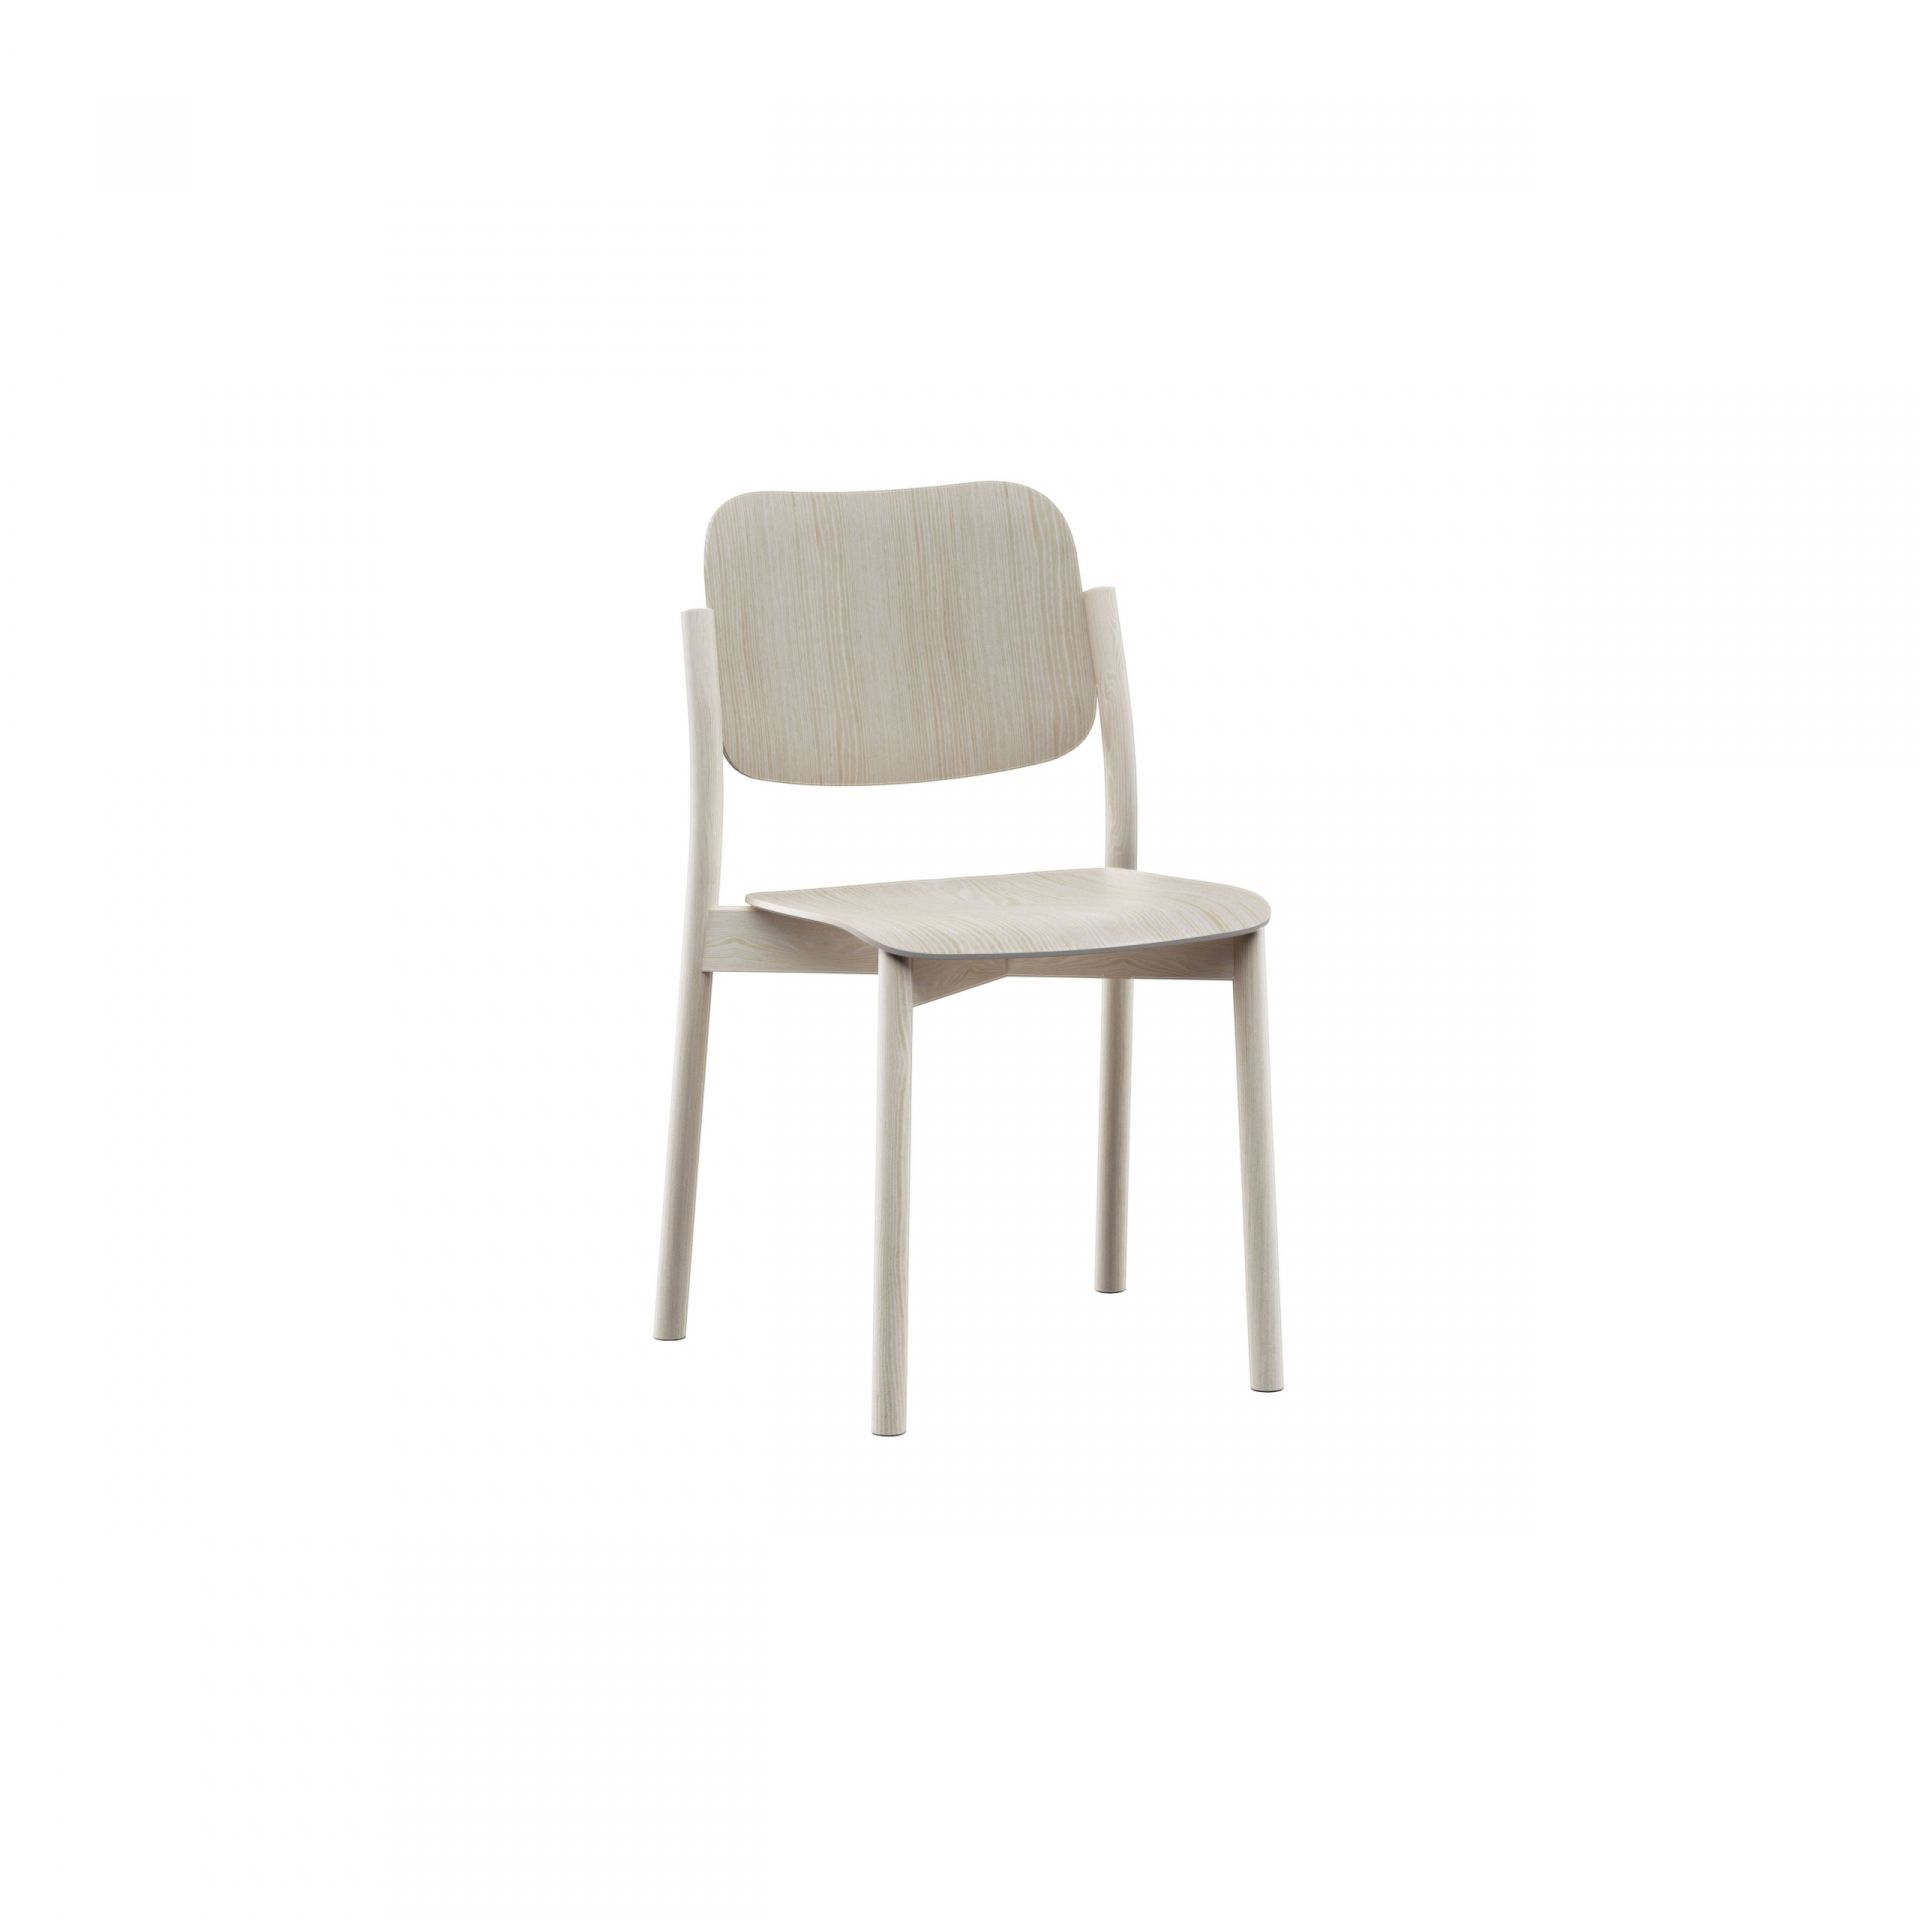 Zoe Wooden chair product image 3